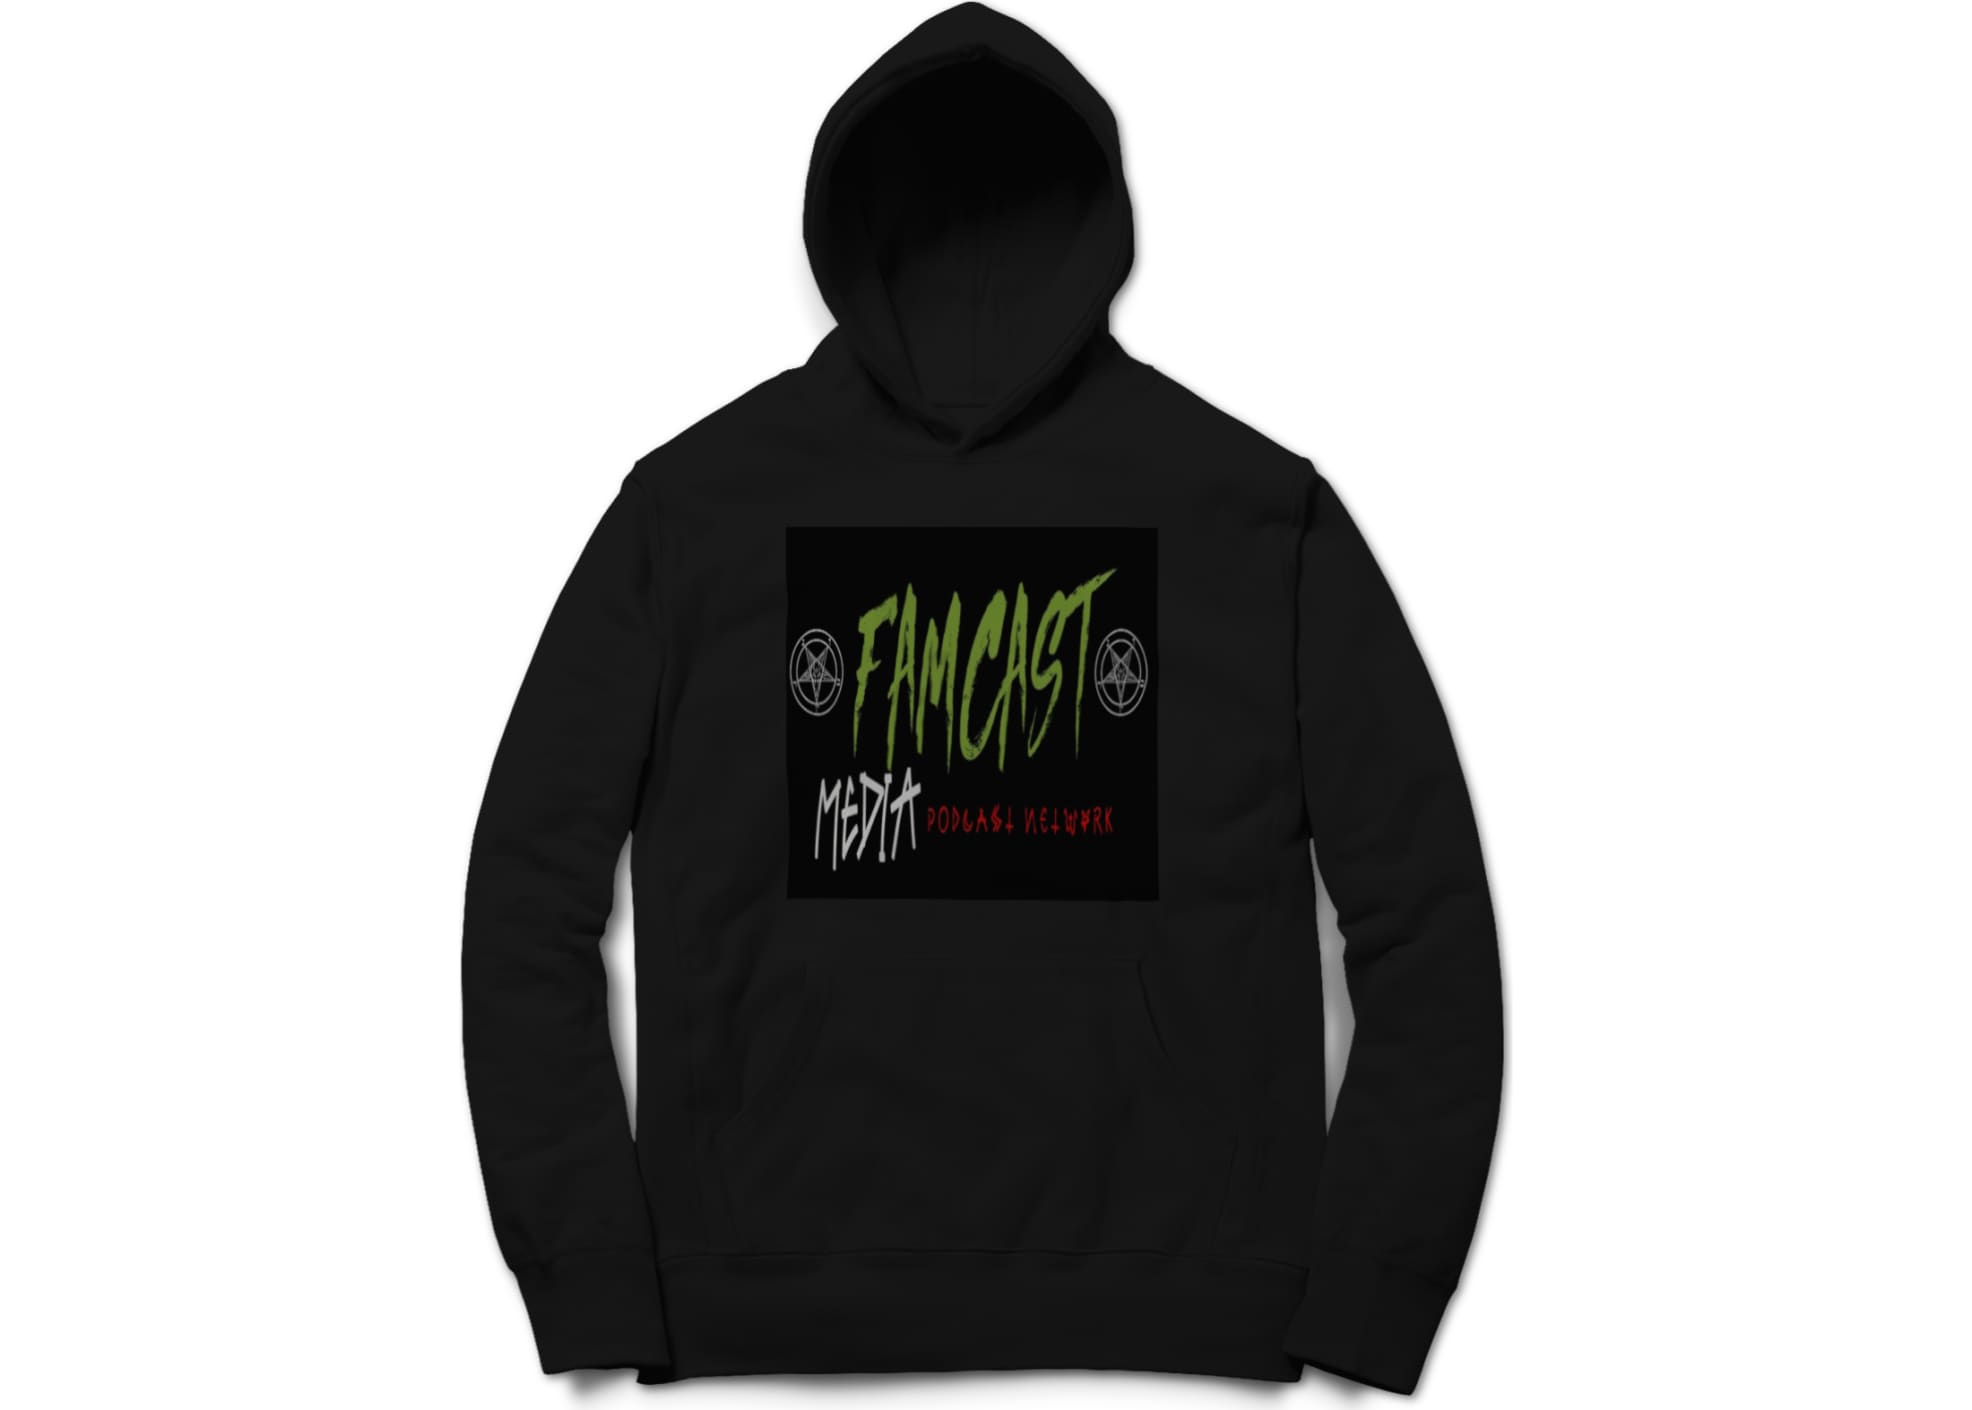 From the dungeon podcast famcast media t shirt 1592572711